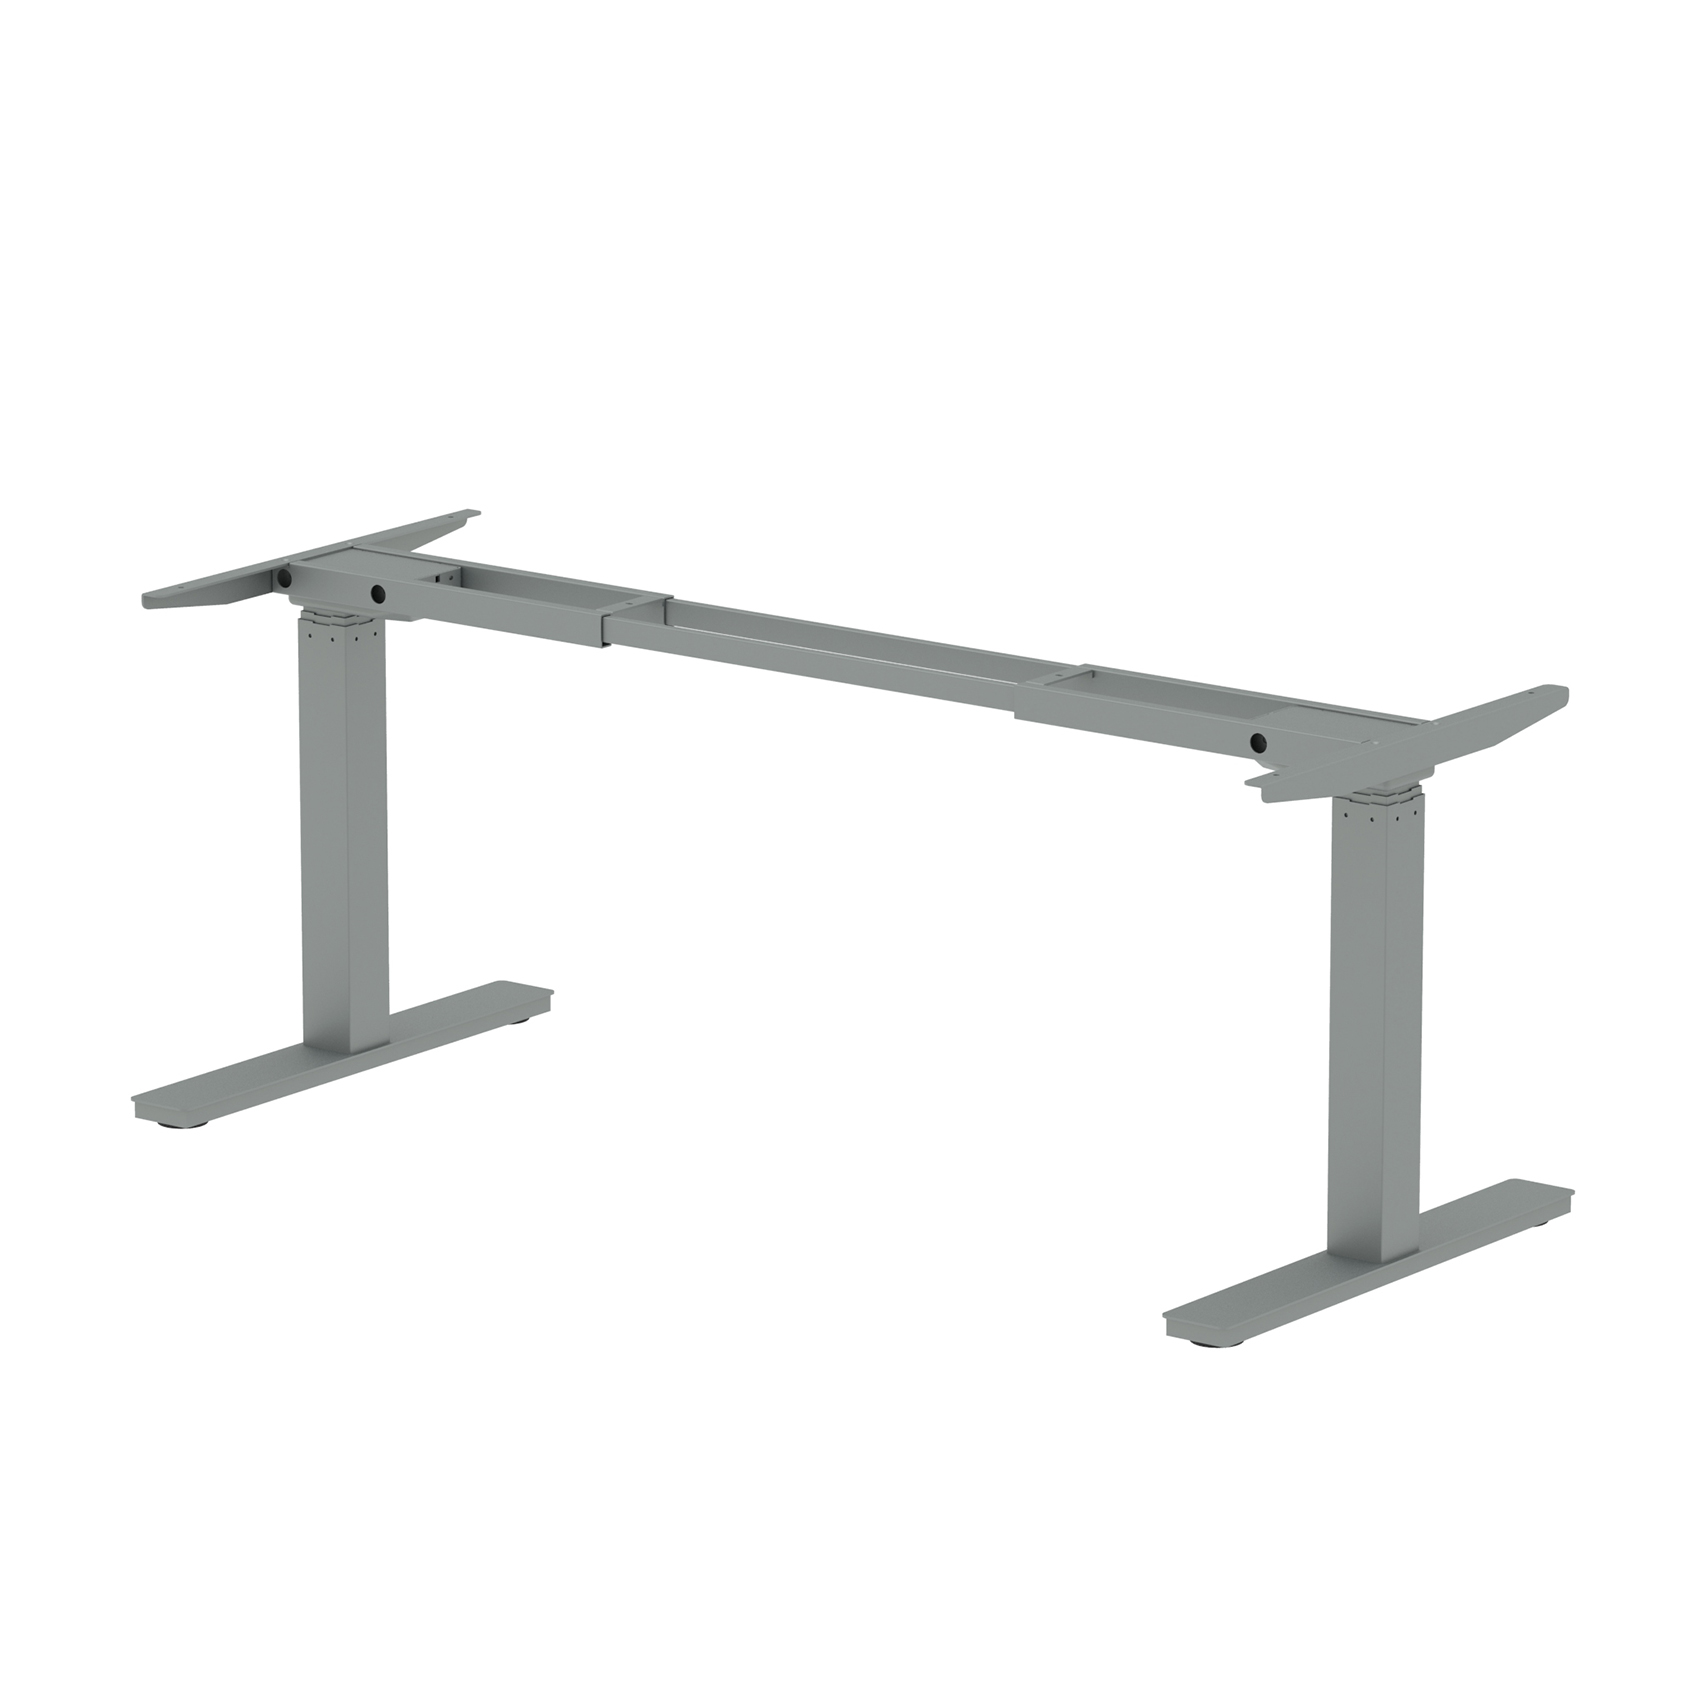 CPU stand Trexus Sit Stand Leg Pack 1600mm width Silver Ref HA0001